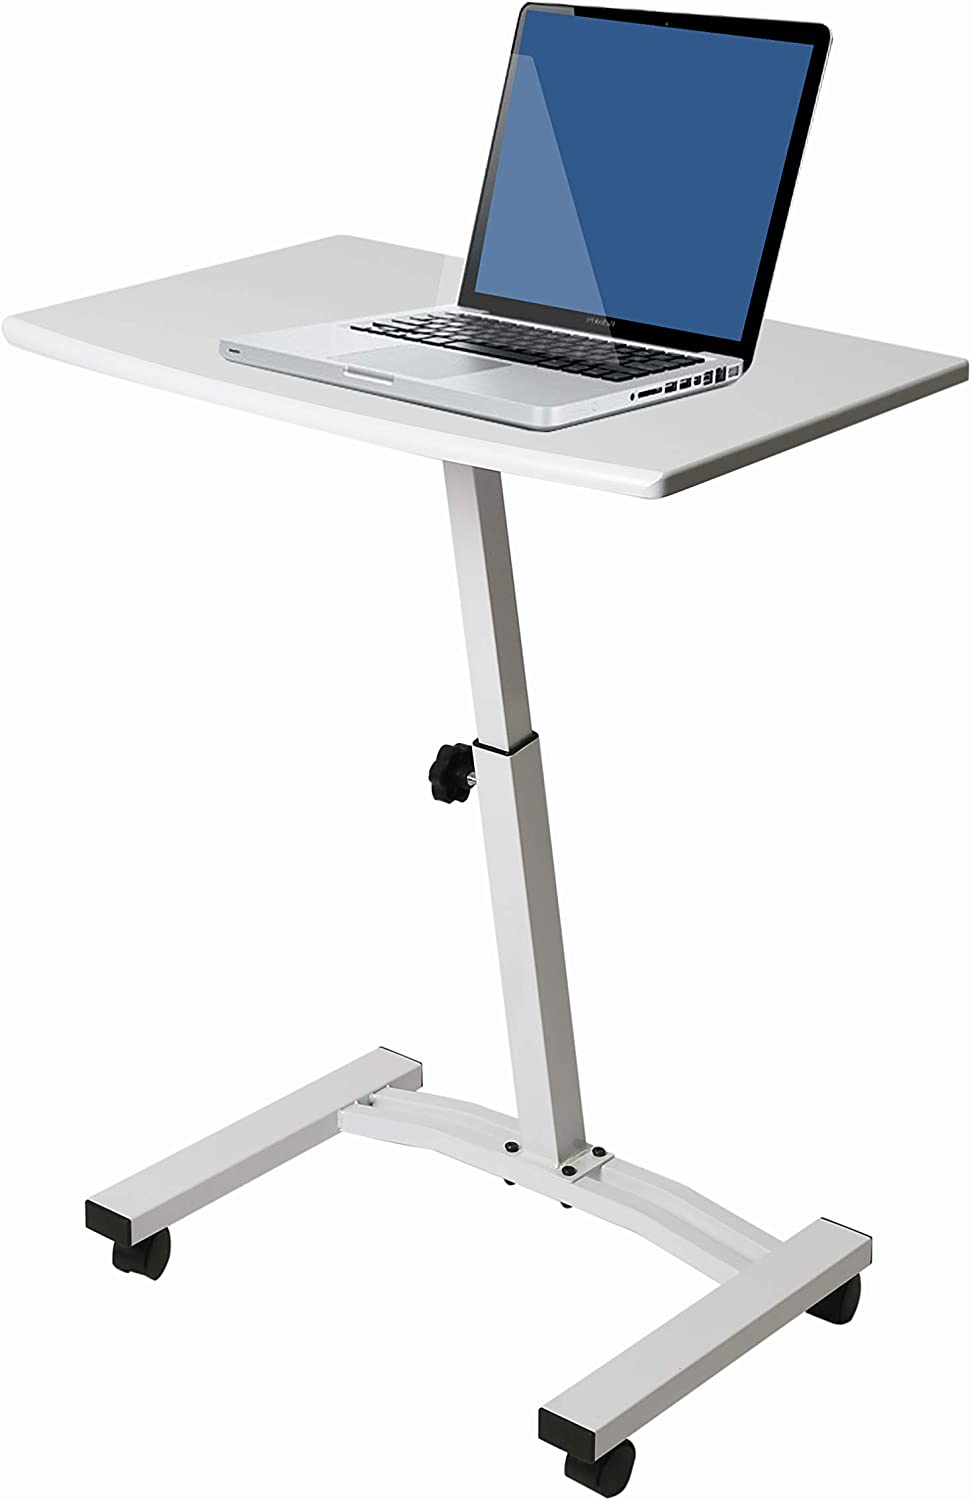 Seville Classics Height Adjustable Sitting Mobile Laptop Desk Cart Ergonomic Table Flat 23 6 Frost White Furniture Decor